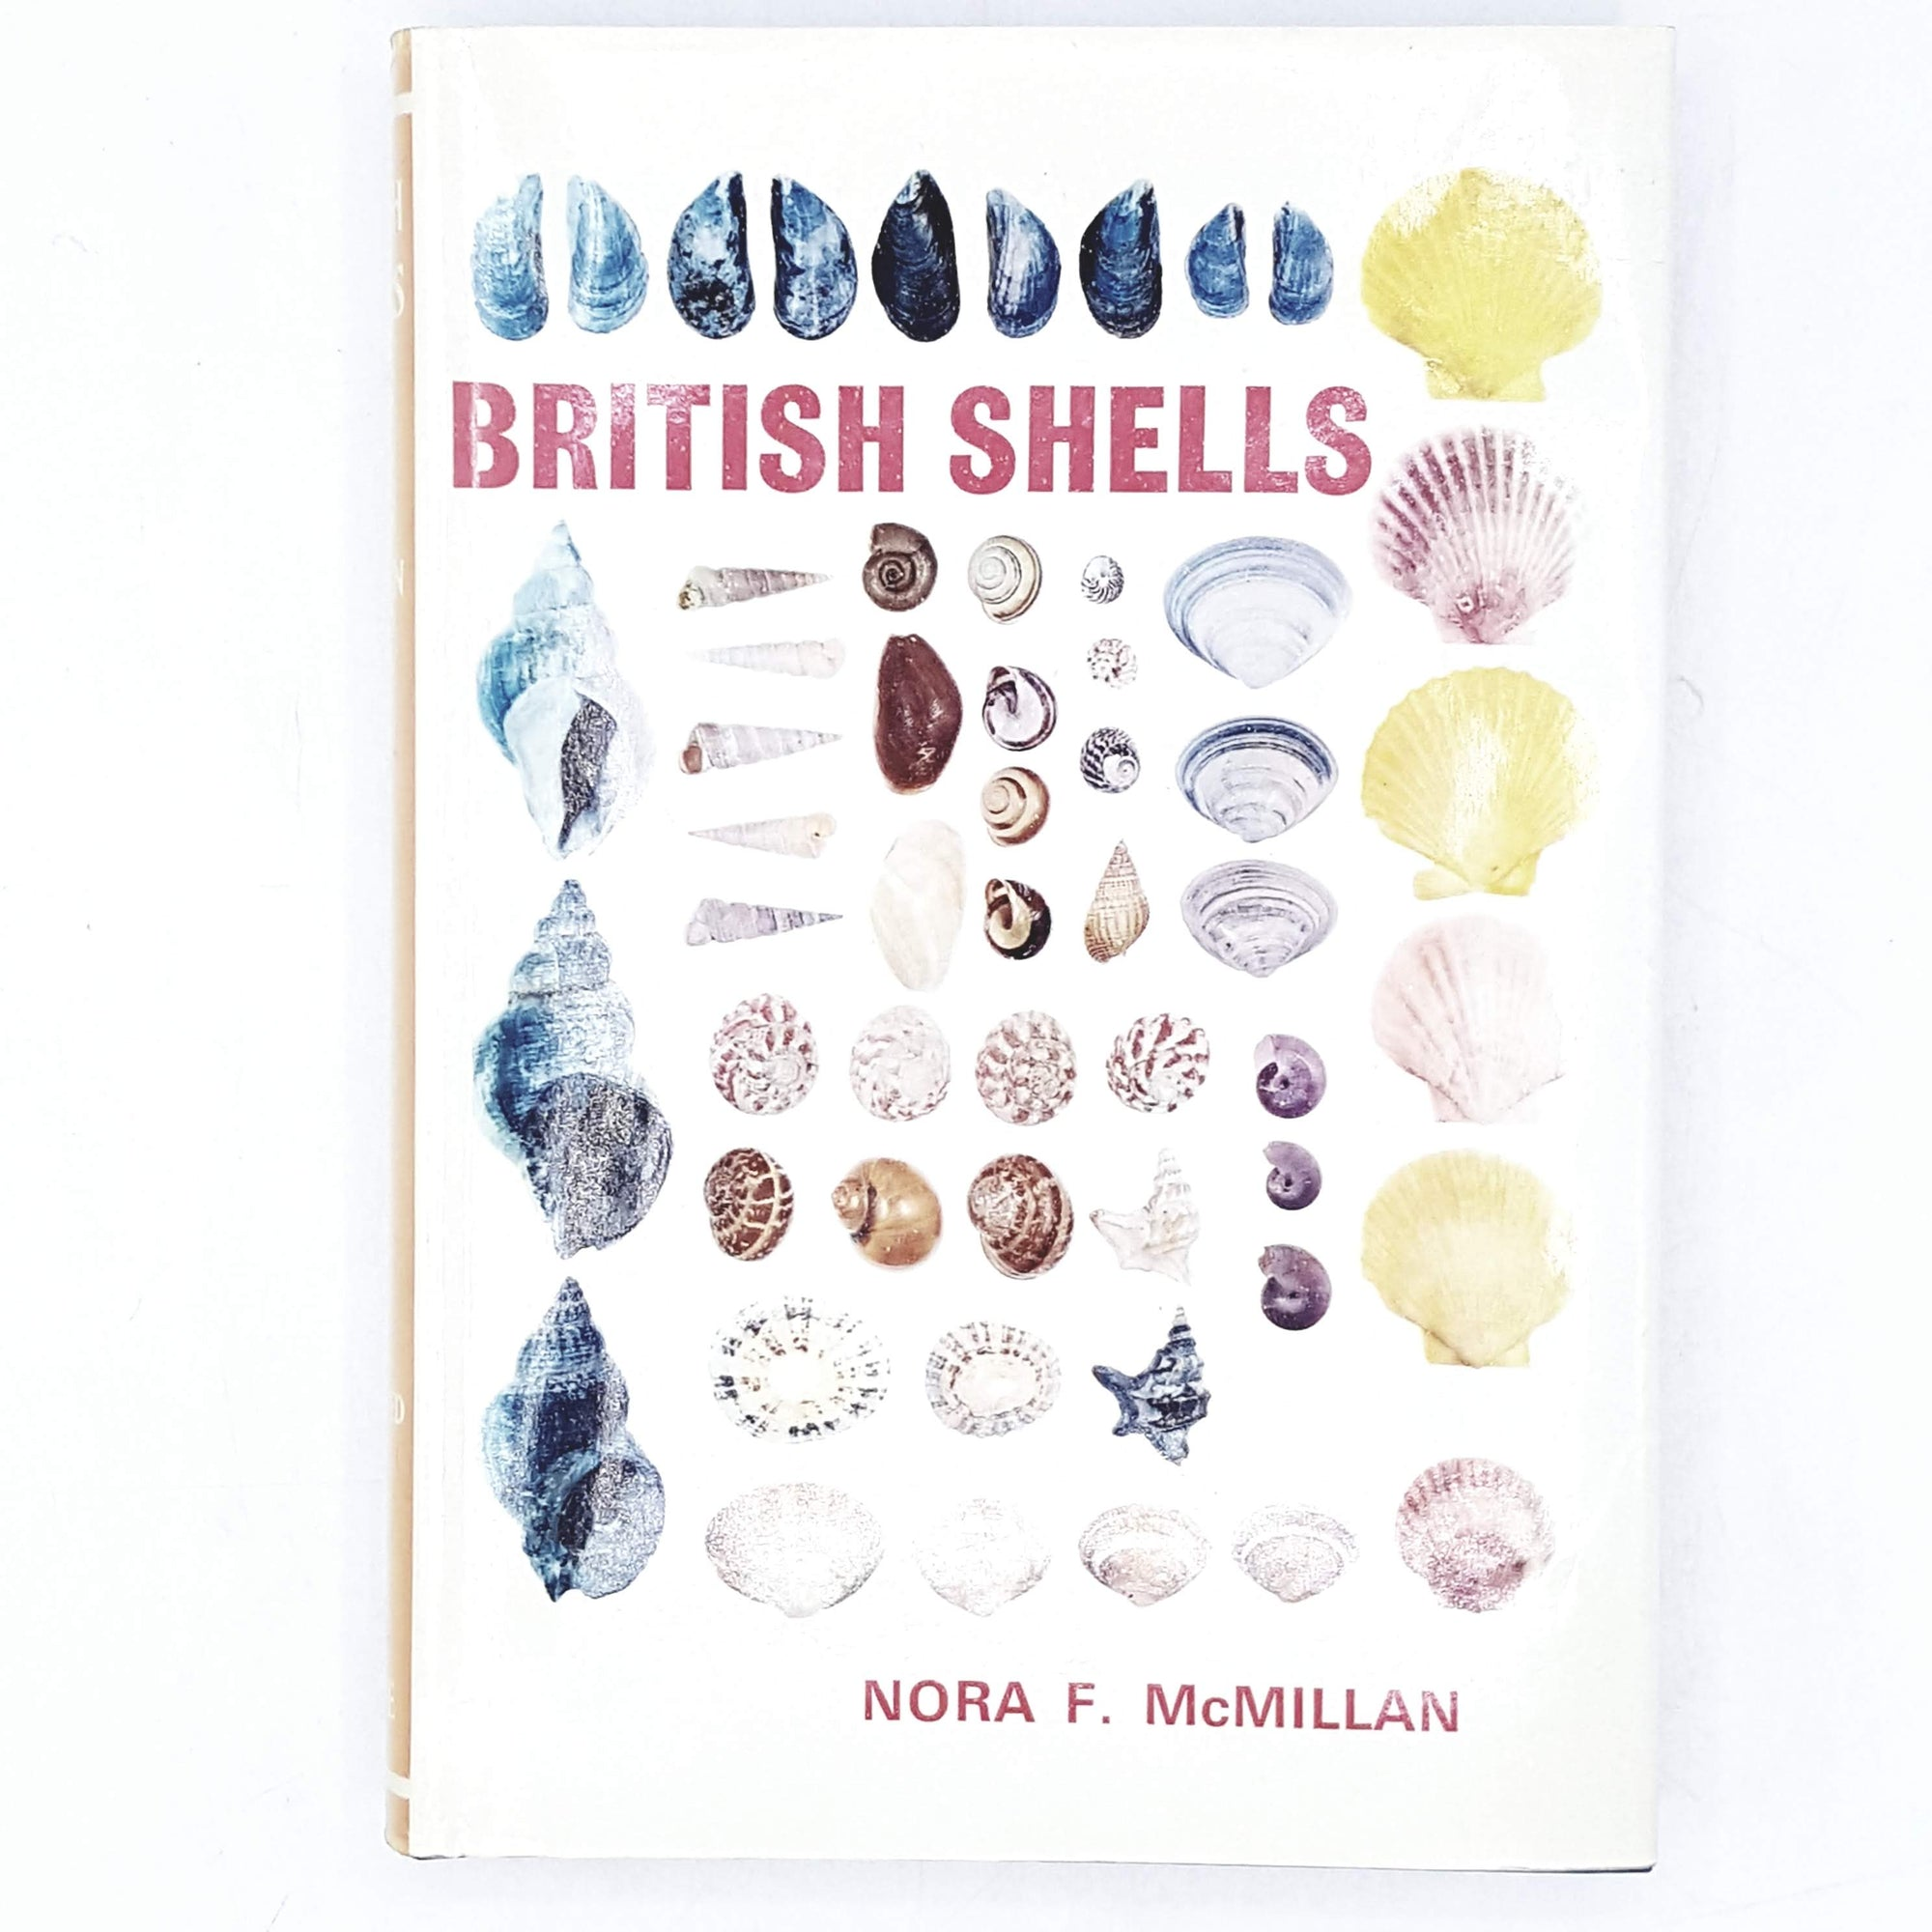 British Shells by Nora F. McMillan 1973